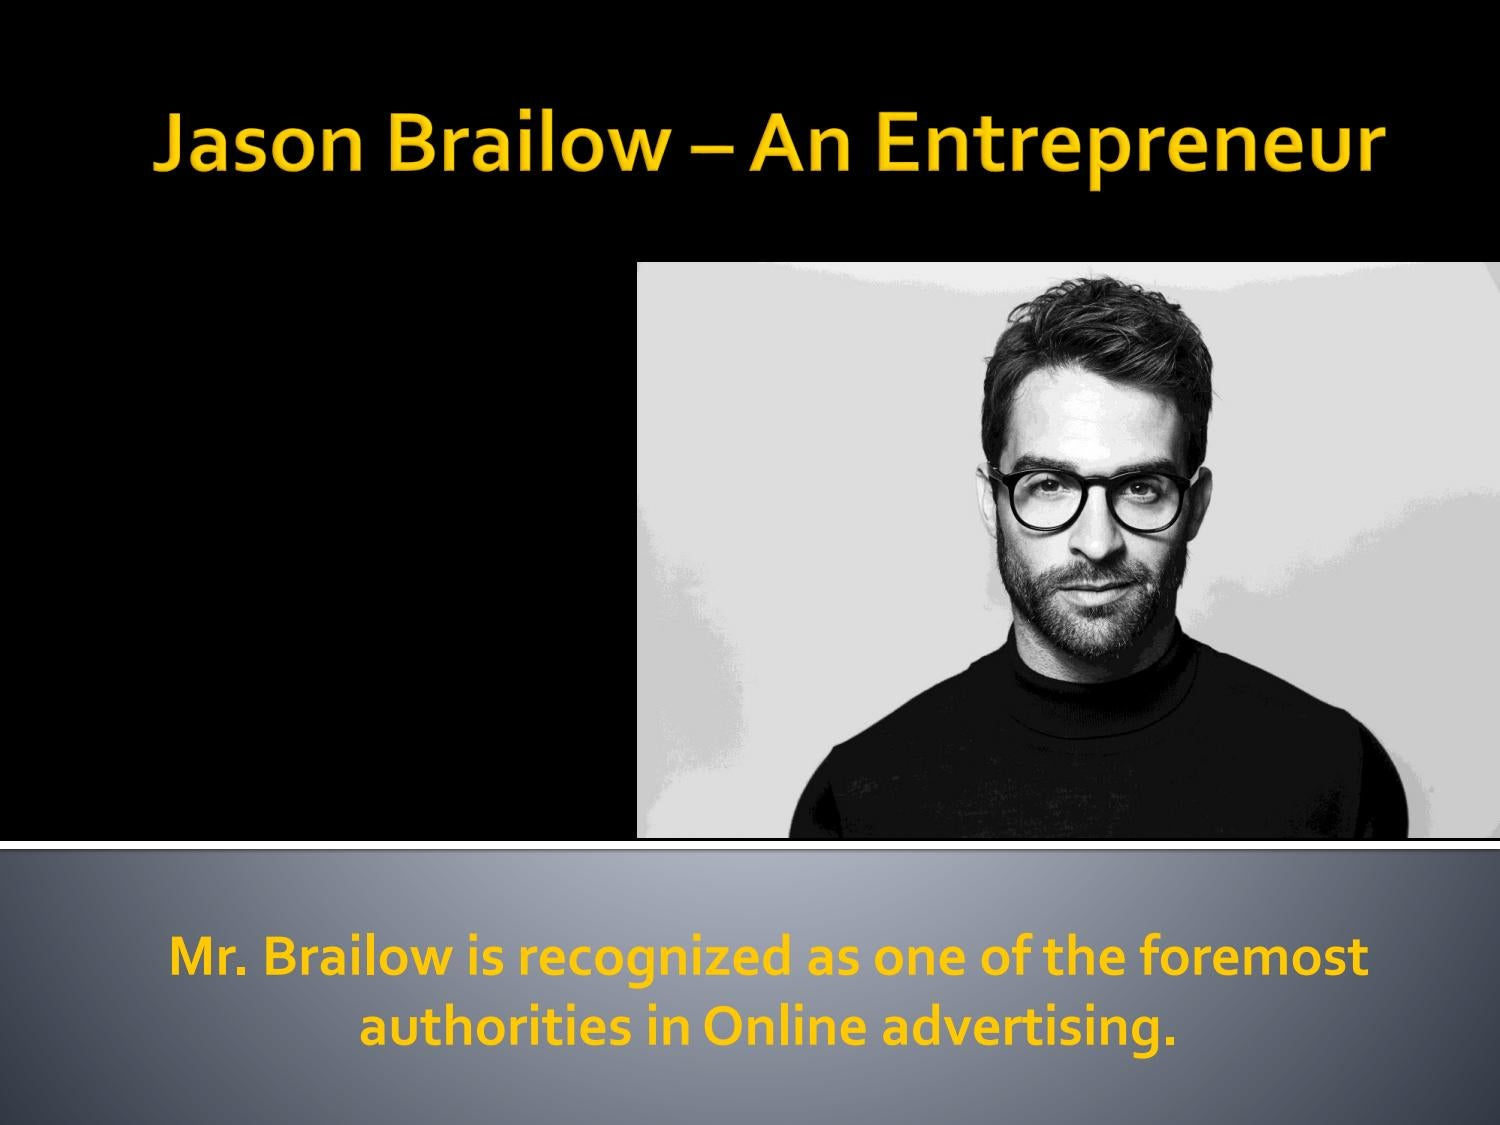 Jason Brailow An Entrepreneur